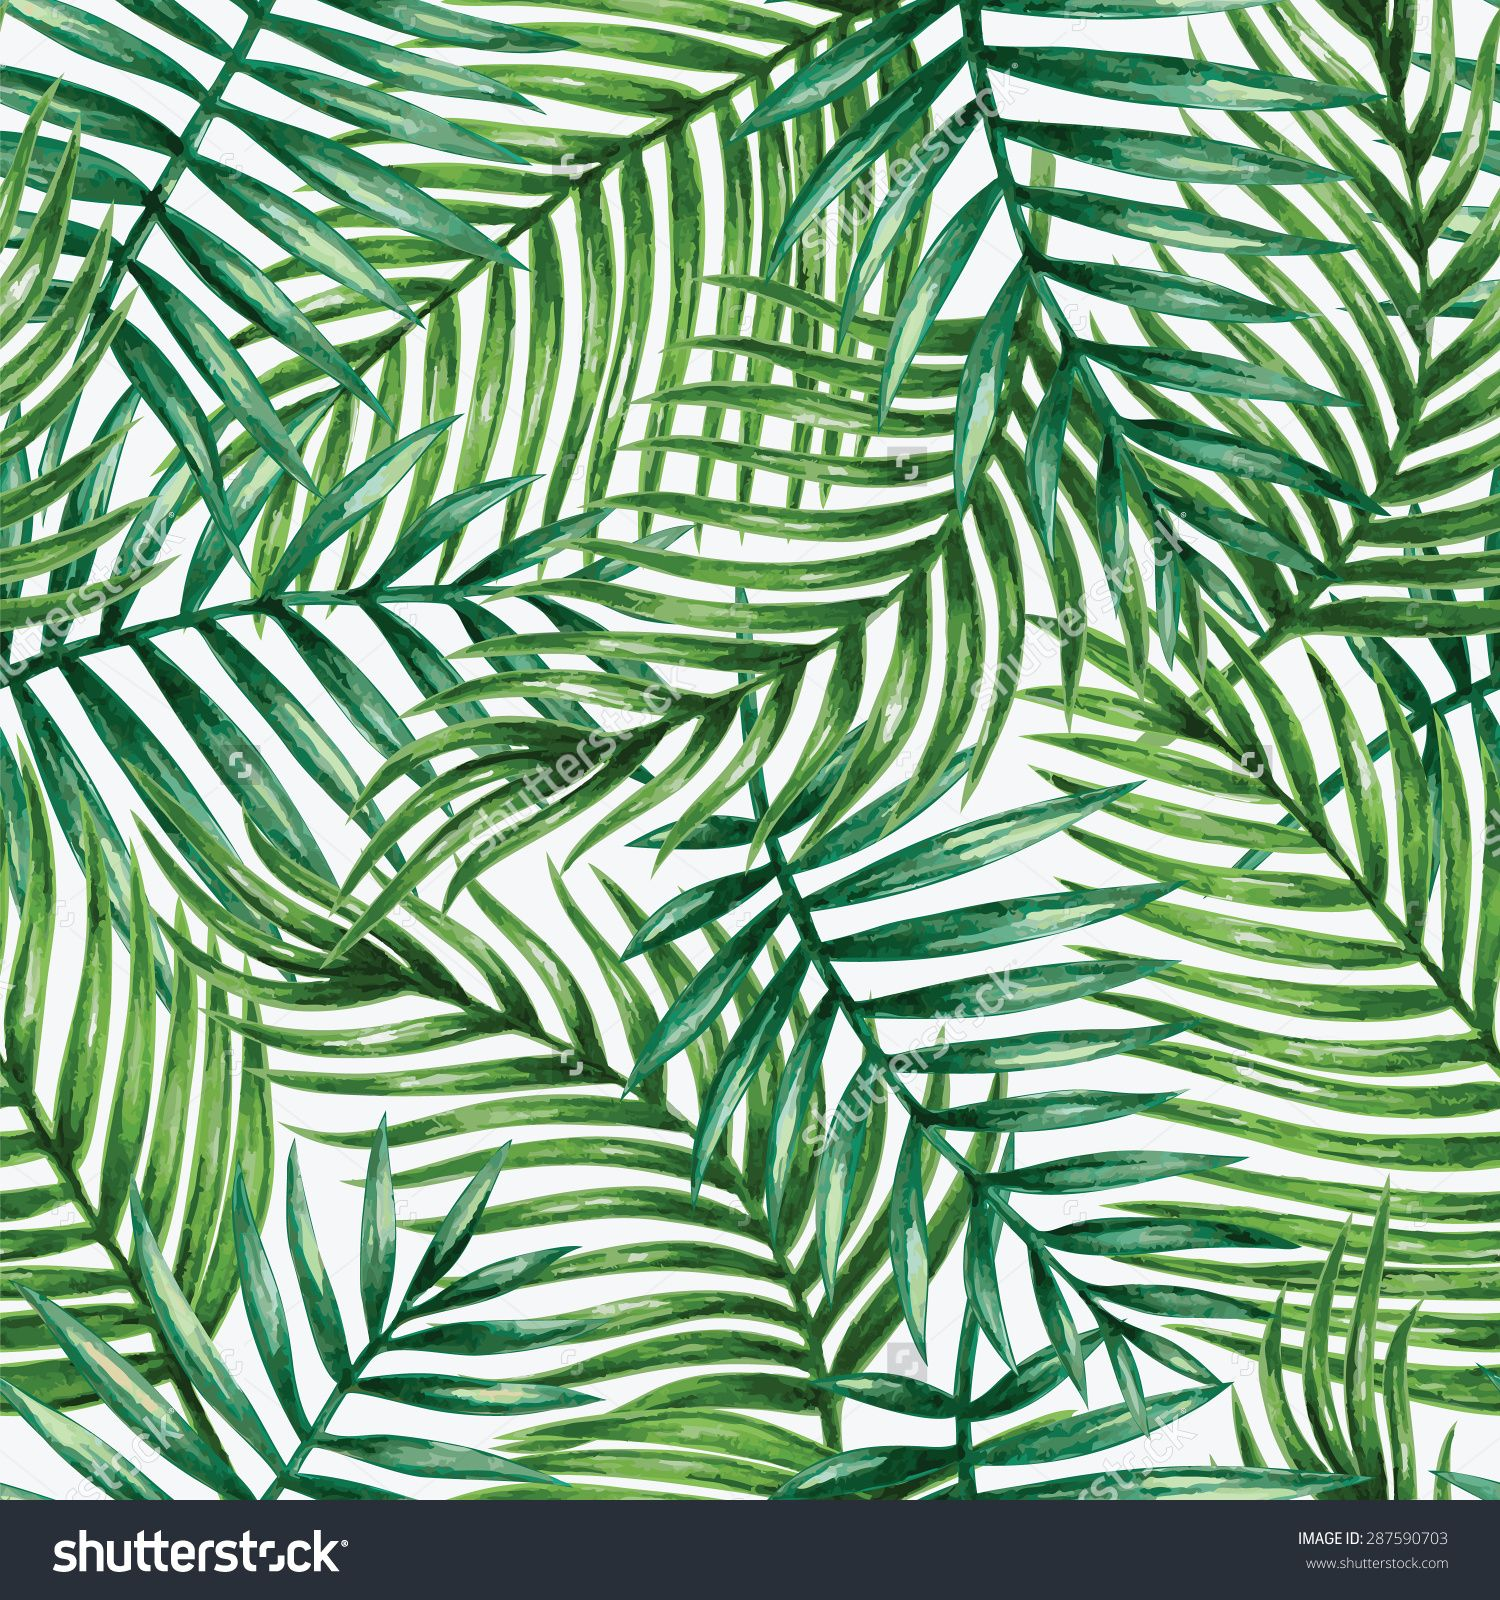 Watercolor Tropical Palm Leaves Seamless Pattern Vector Illustration